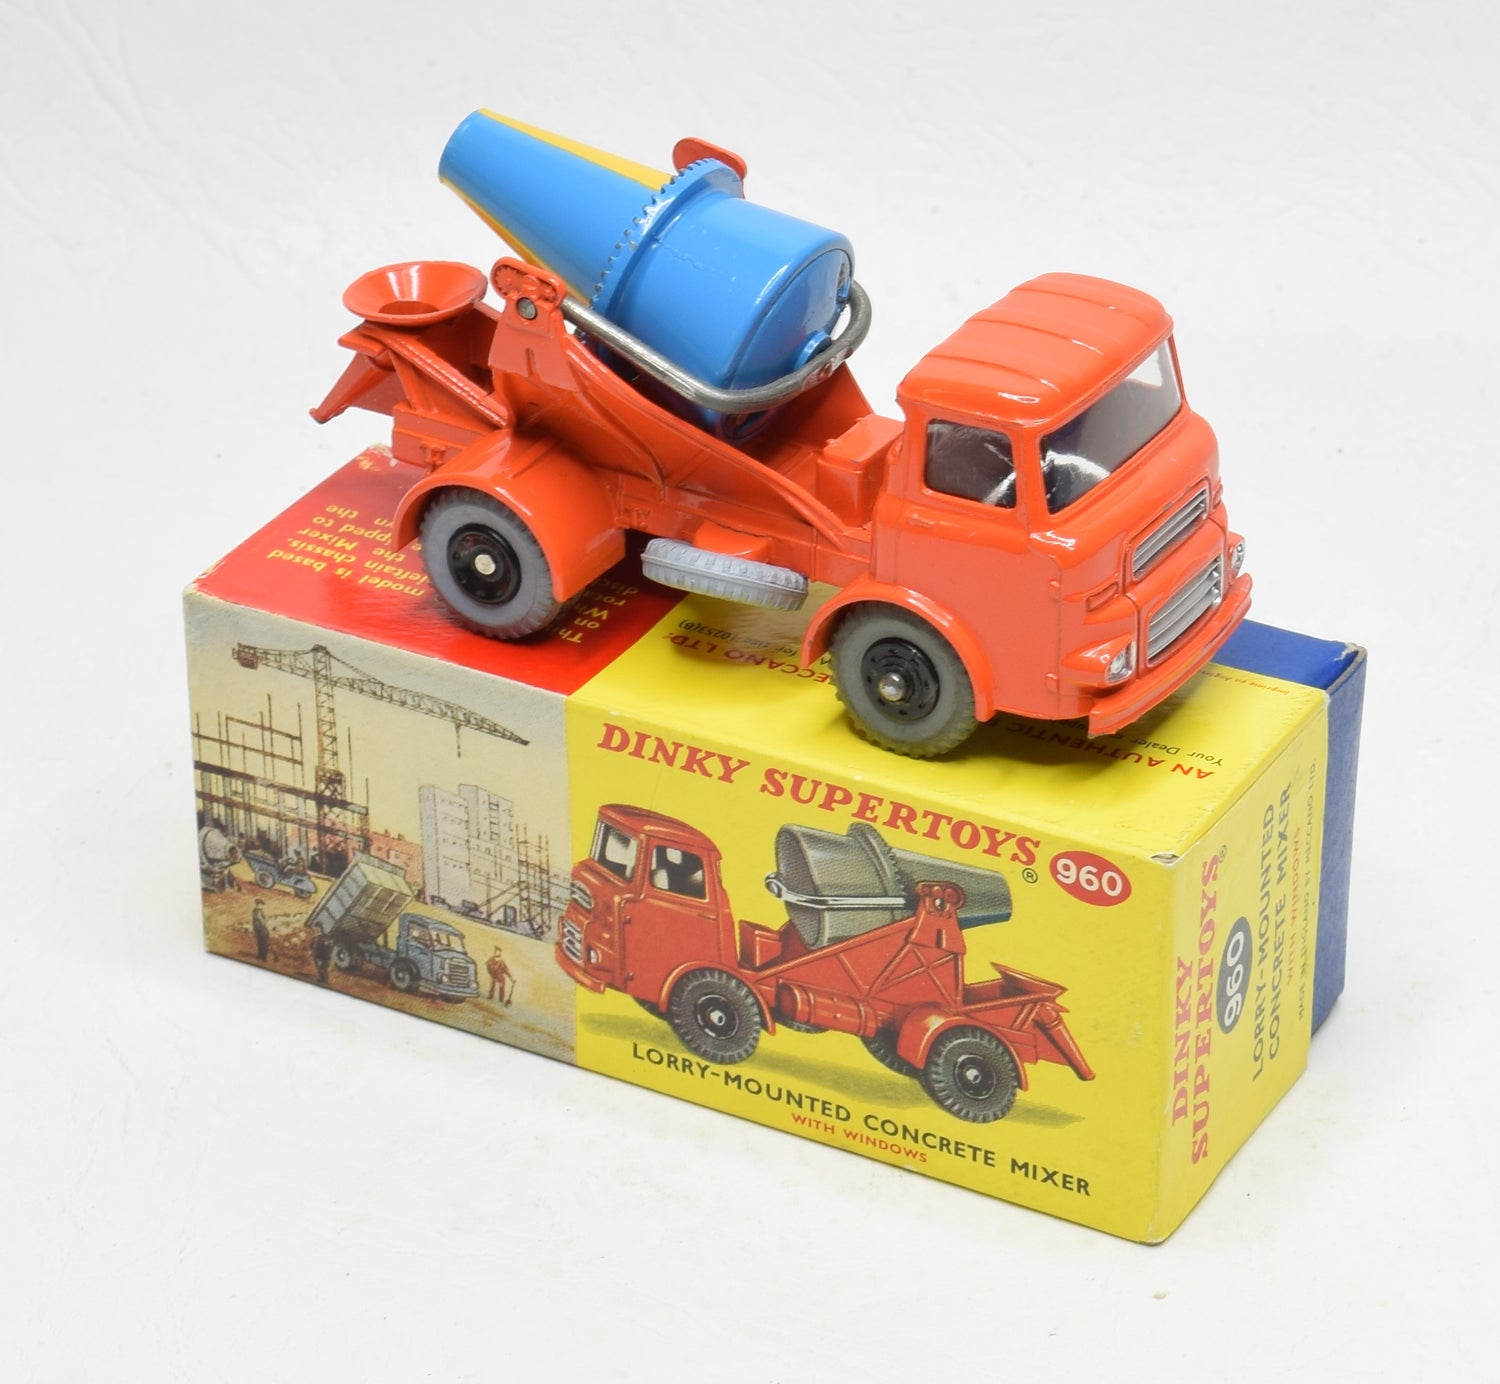 Dinky Toys 960 Concrete Mixer Very Near Mint/Boxed The 'Carlton' Collection